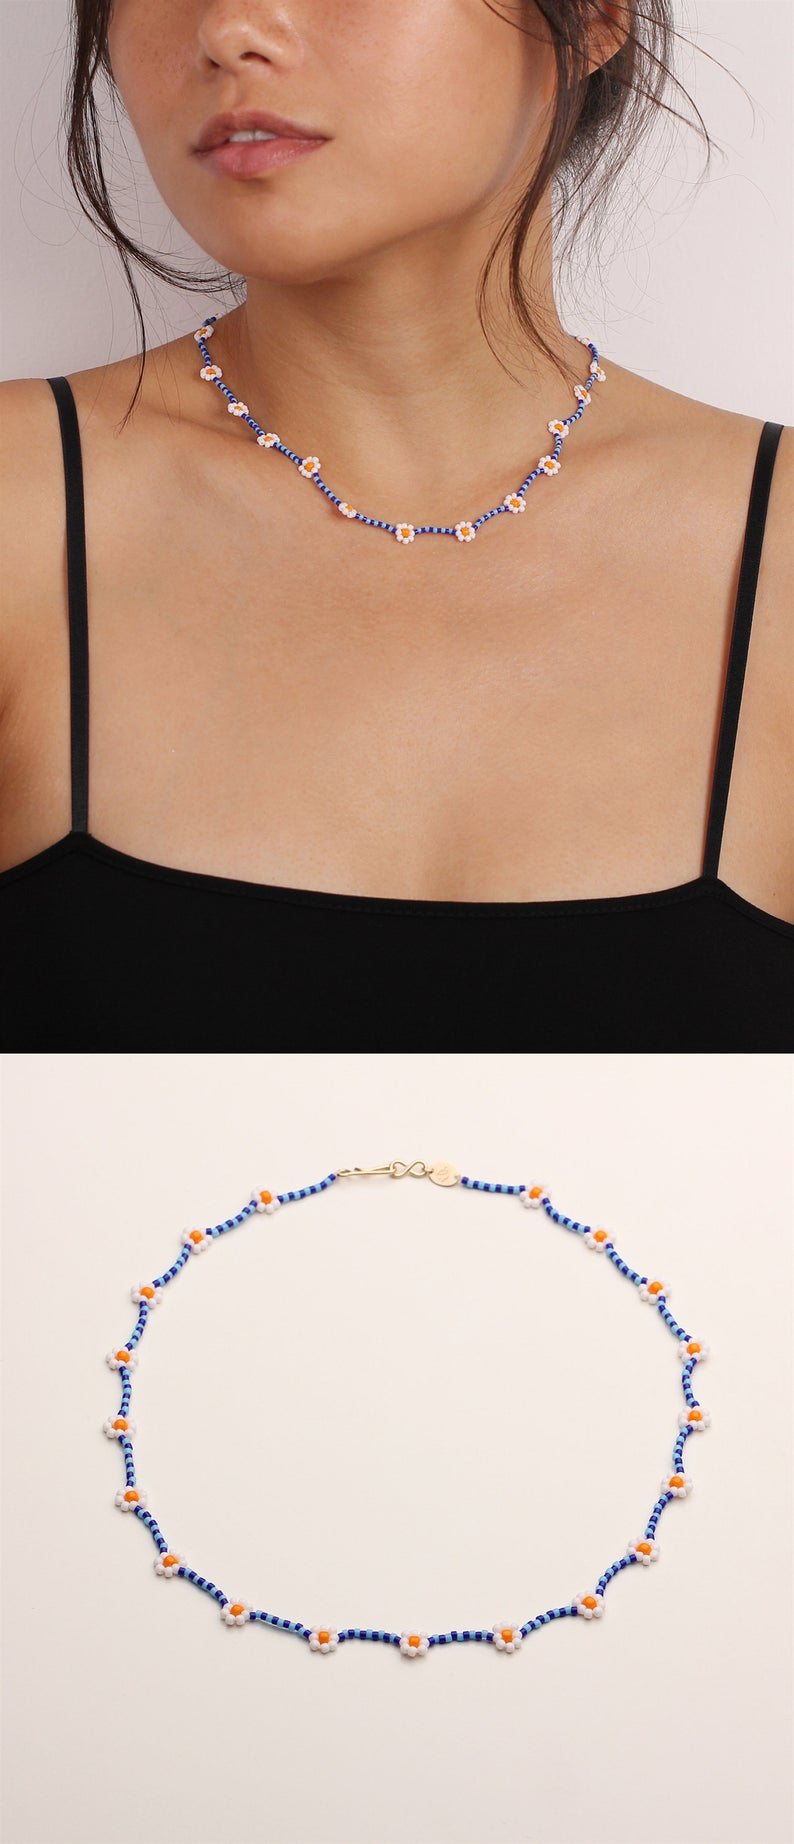 Colorful Daisy Chain Beaded Chokers w Gold or Silver Hardware Daisy Chain Choker Beaded Necklaces